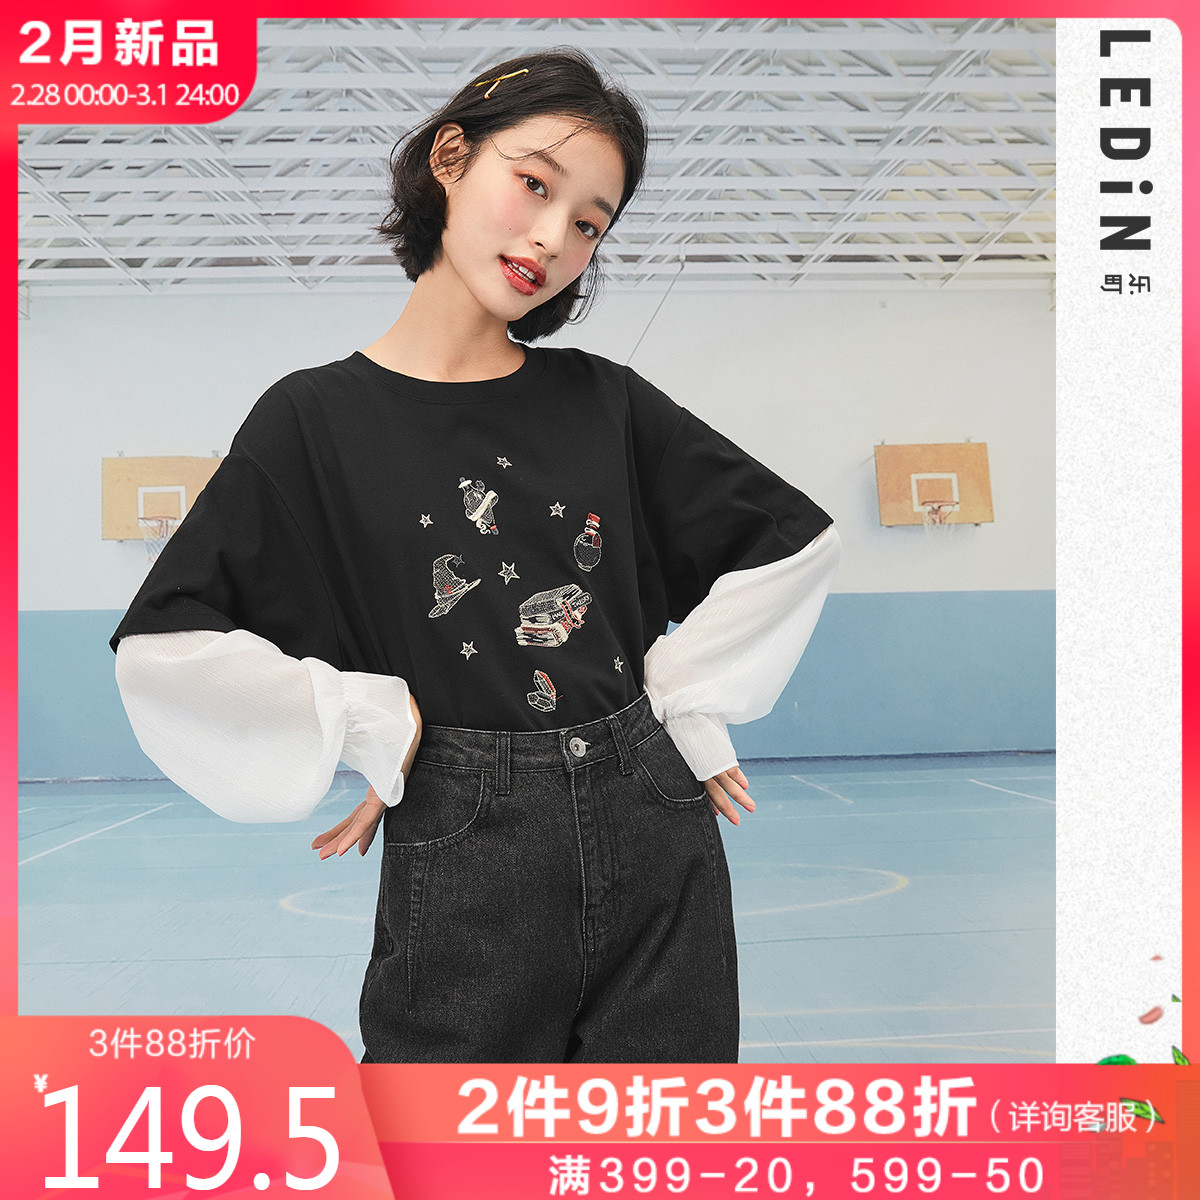 New Le Ting magic embroidery black short sleeve T-shirt for women 2020 spring new loose fake two piece top